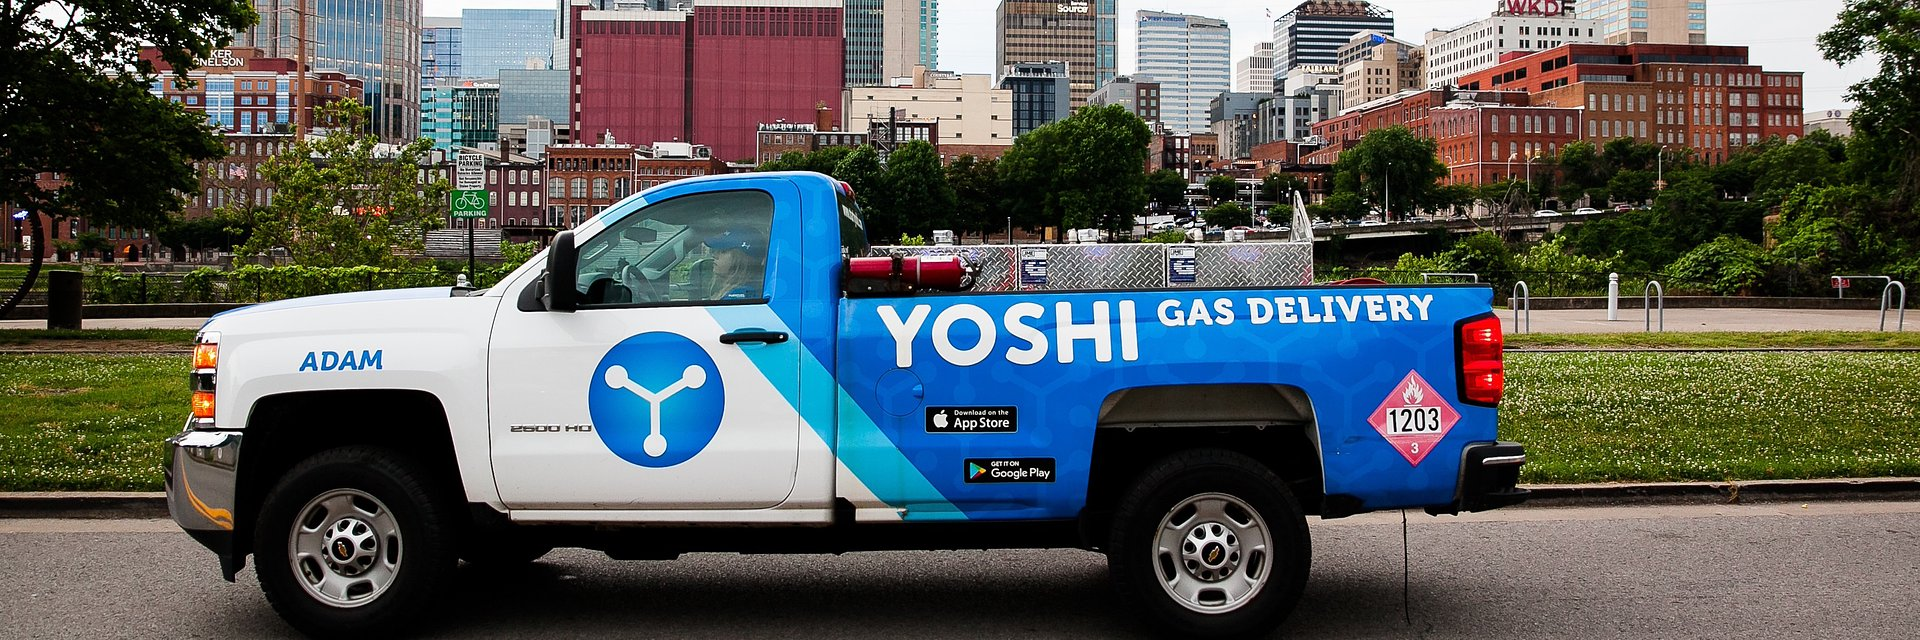 Yoshi raises additional capital, continues growth and service expansion